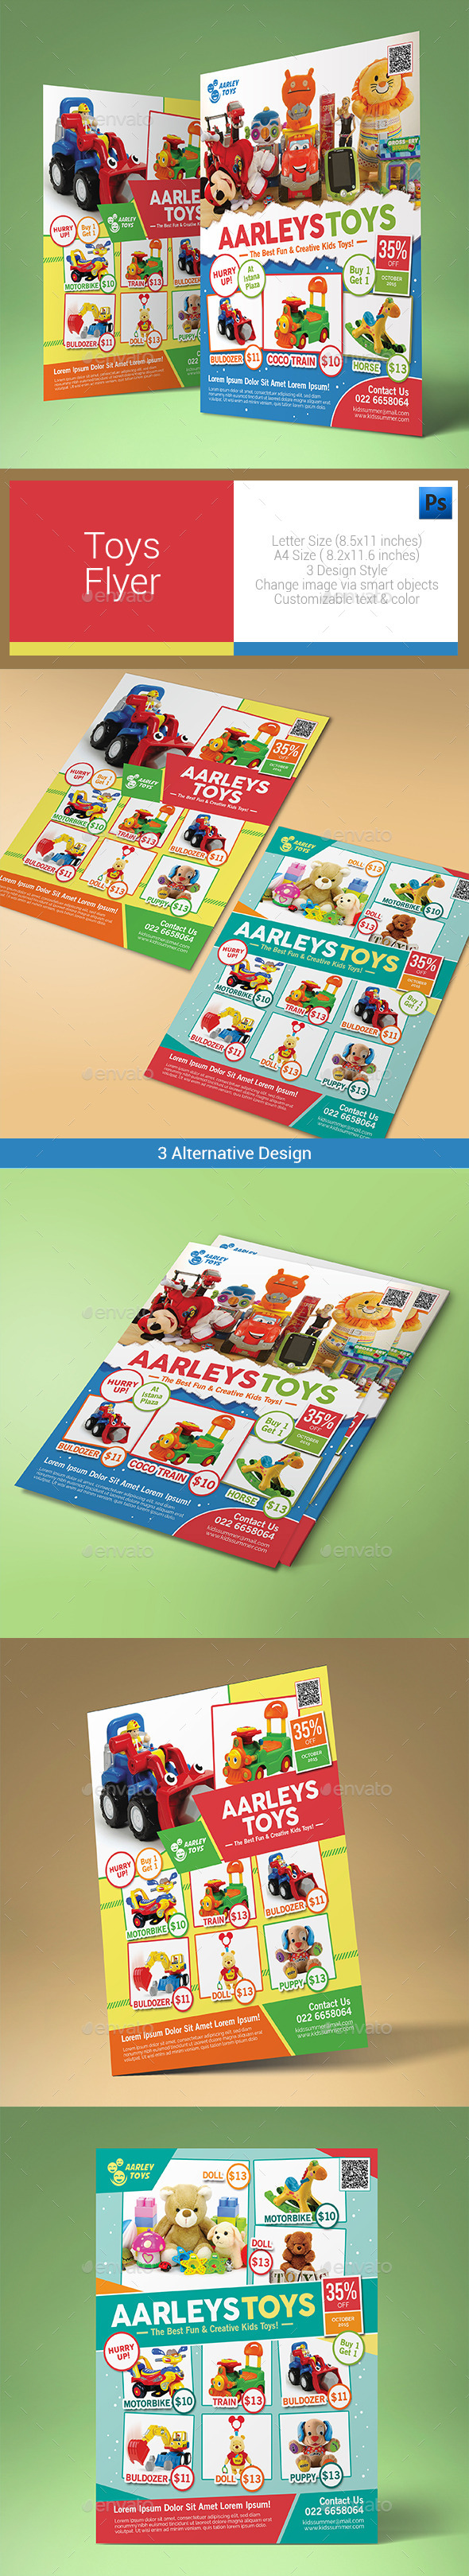 GraphicRiver Toys Flyer 10547600